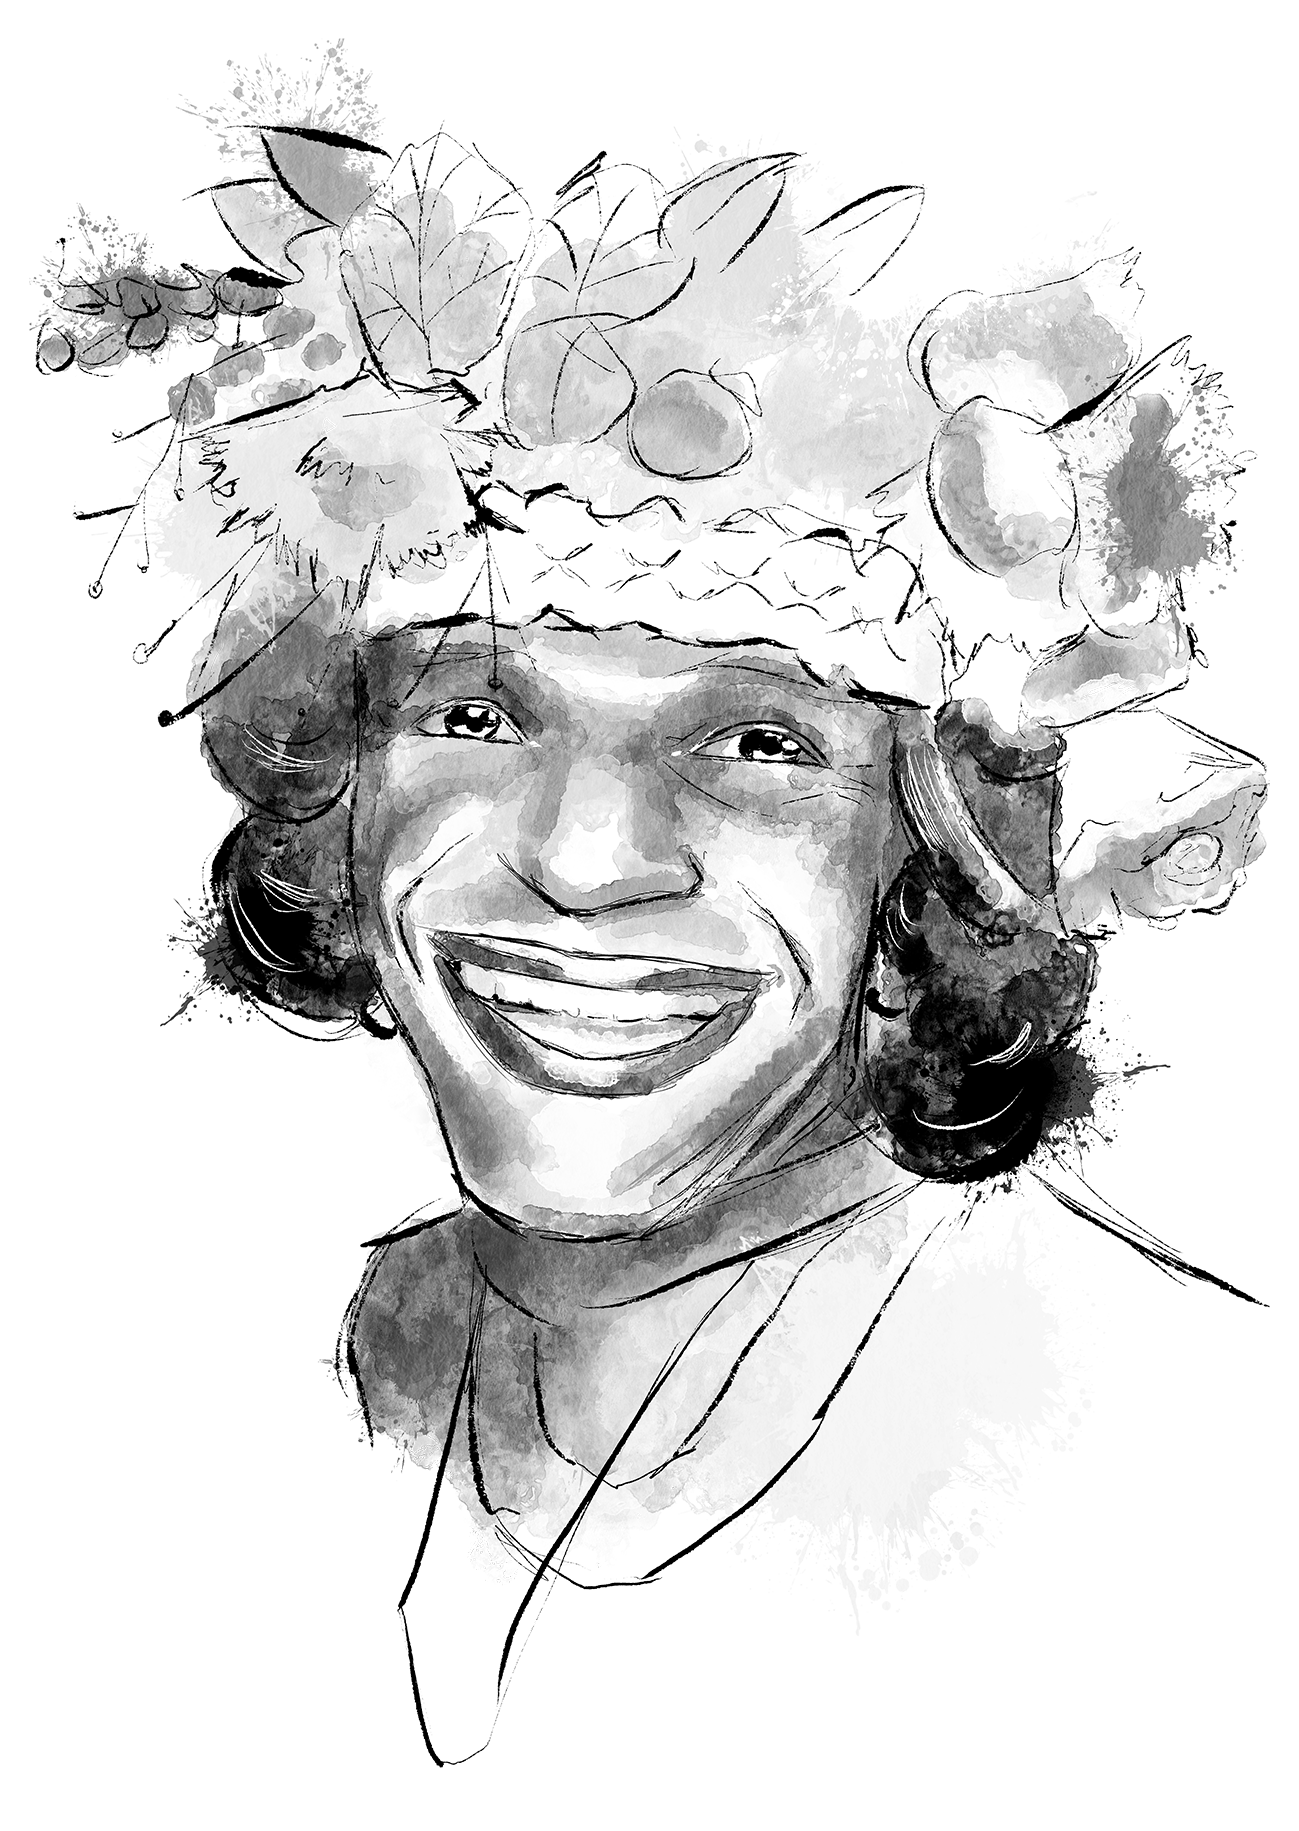 GLSEN LGBTQ+ History Cards - Image of Marsha P Johnson